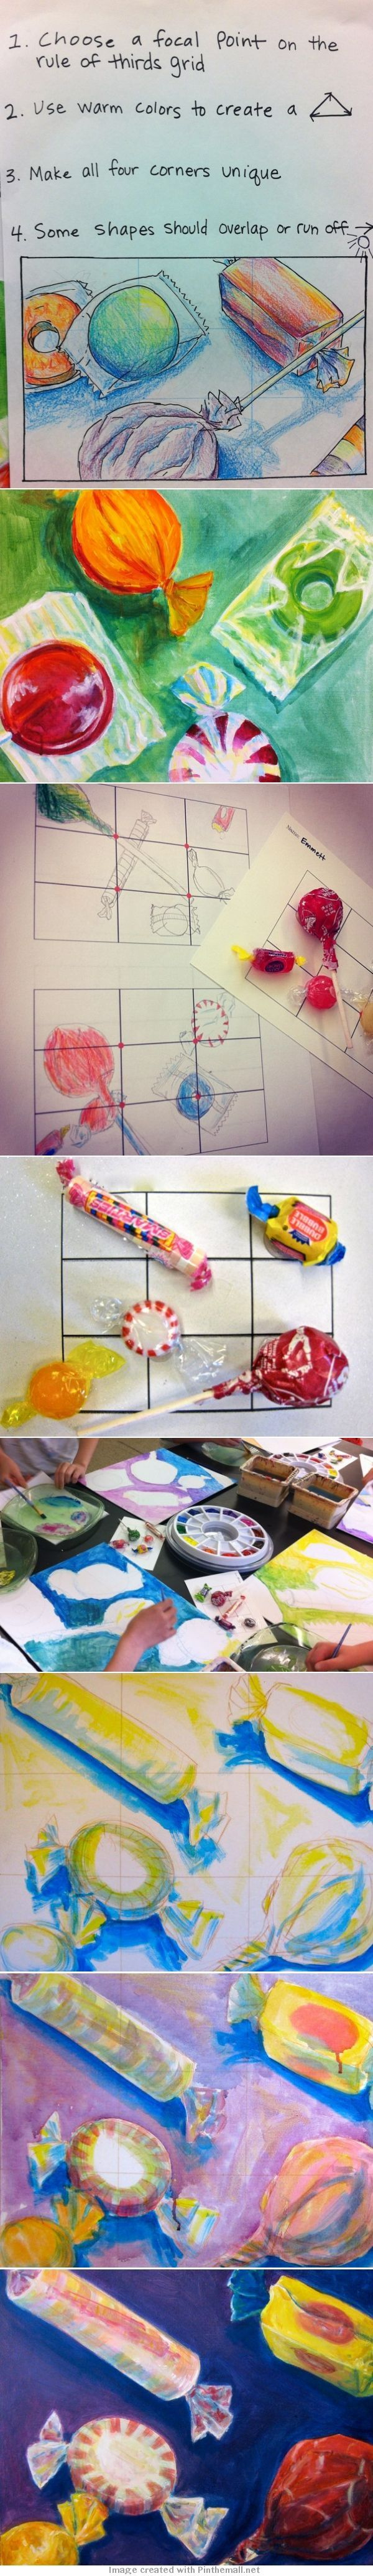 Wayne Thiebaud Candy Compositions Concepts: Composition, Acrylic Painting, Color Theory - created via http://pinthemall.net: